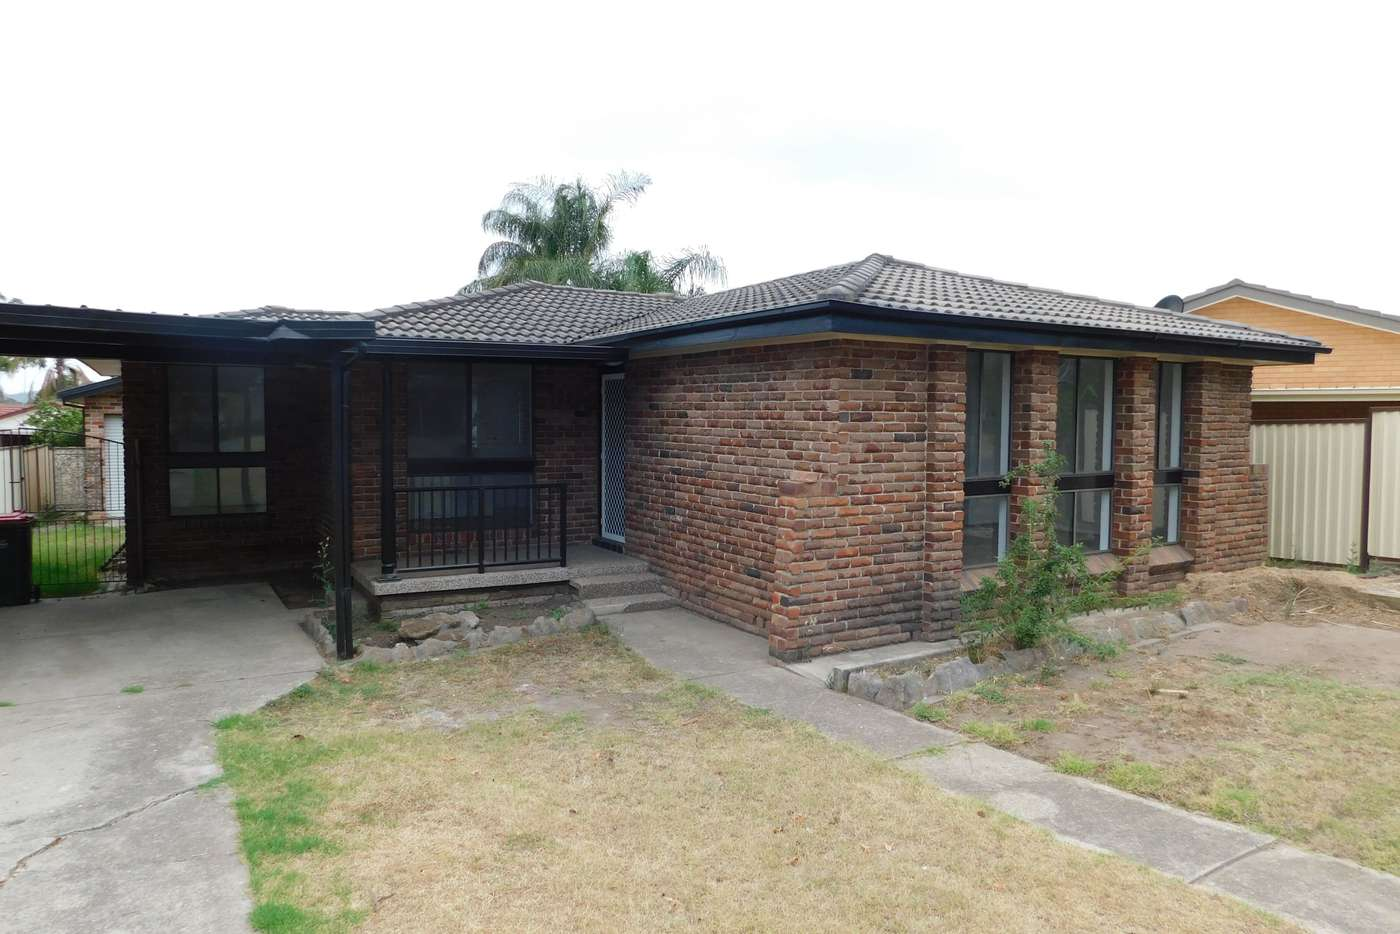 Main view of Homely house listing, 17 Longfellow Street, Wetherill Park NSW 2164